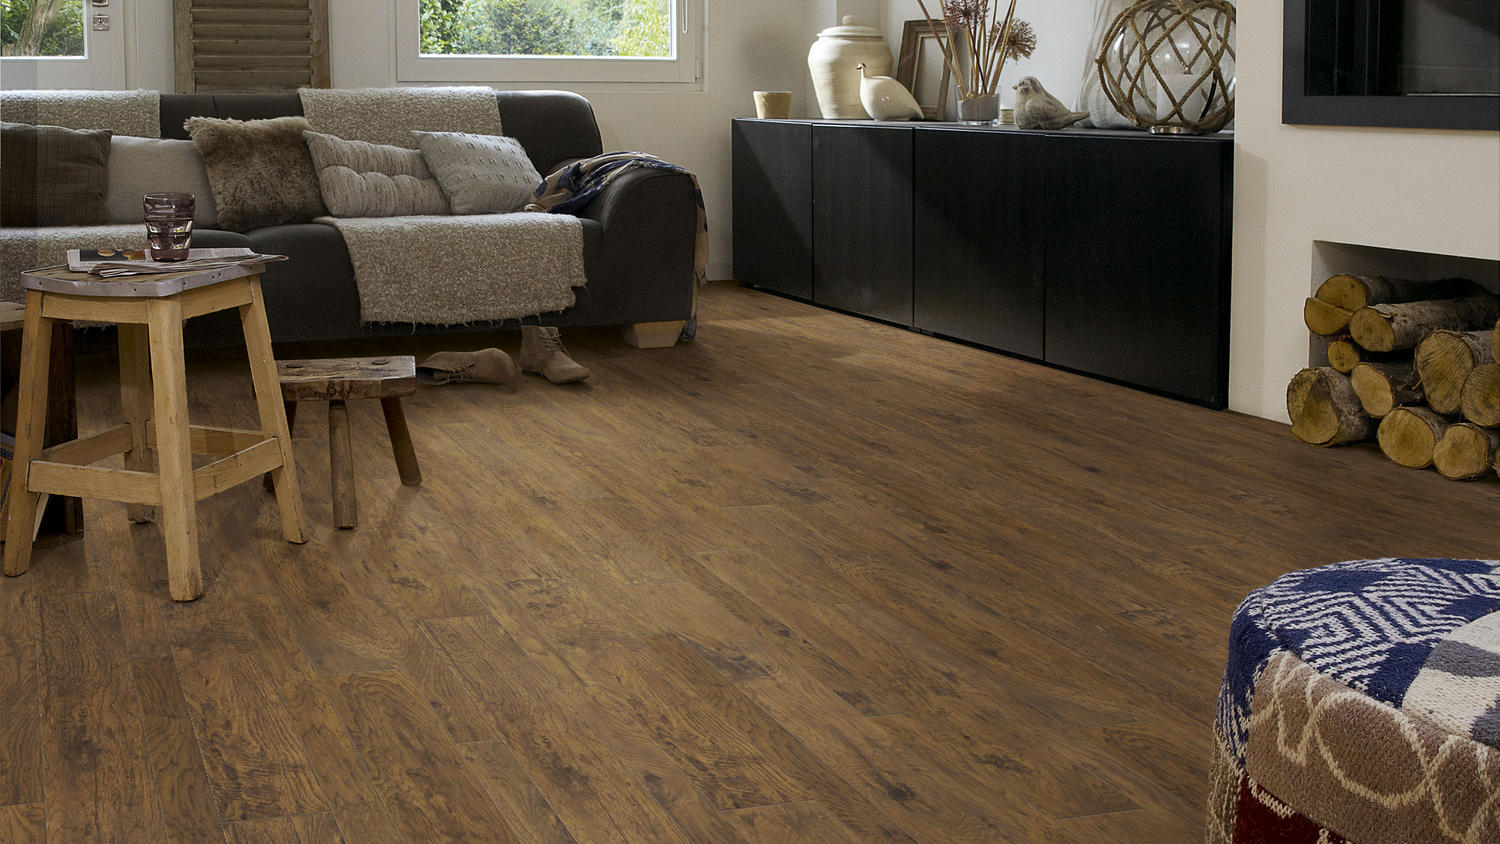 Tarkett Holding Gmbh Laminate Flooring - Mannington, Tarkett, Inhaus, Quick-step, Beauflor — Towne Paint & Flooring